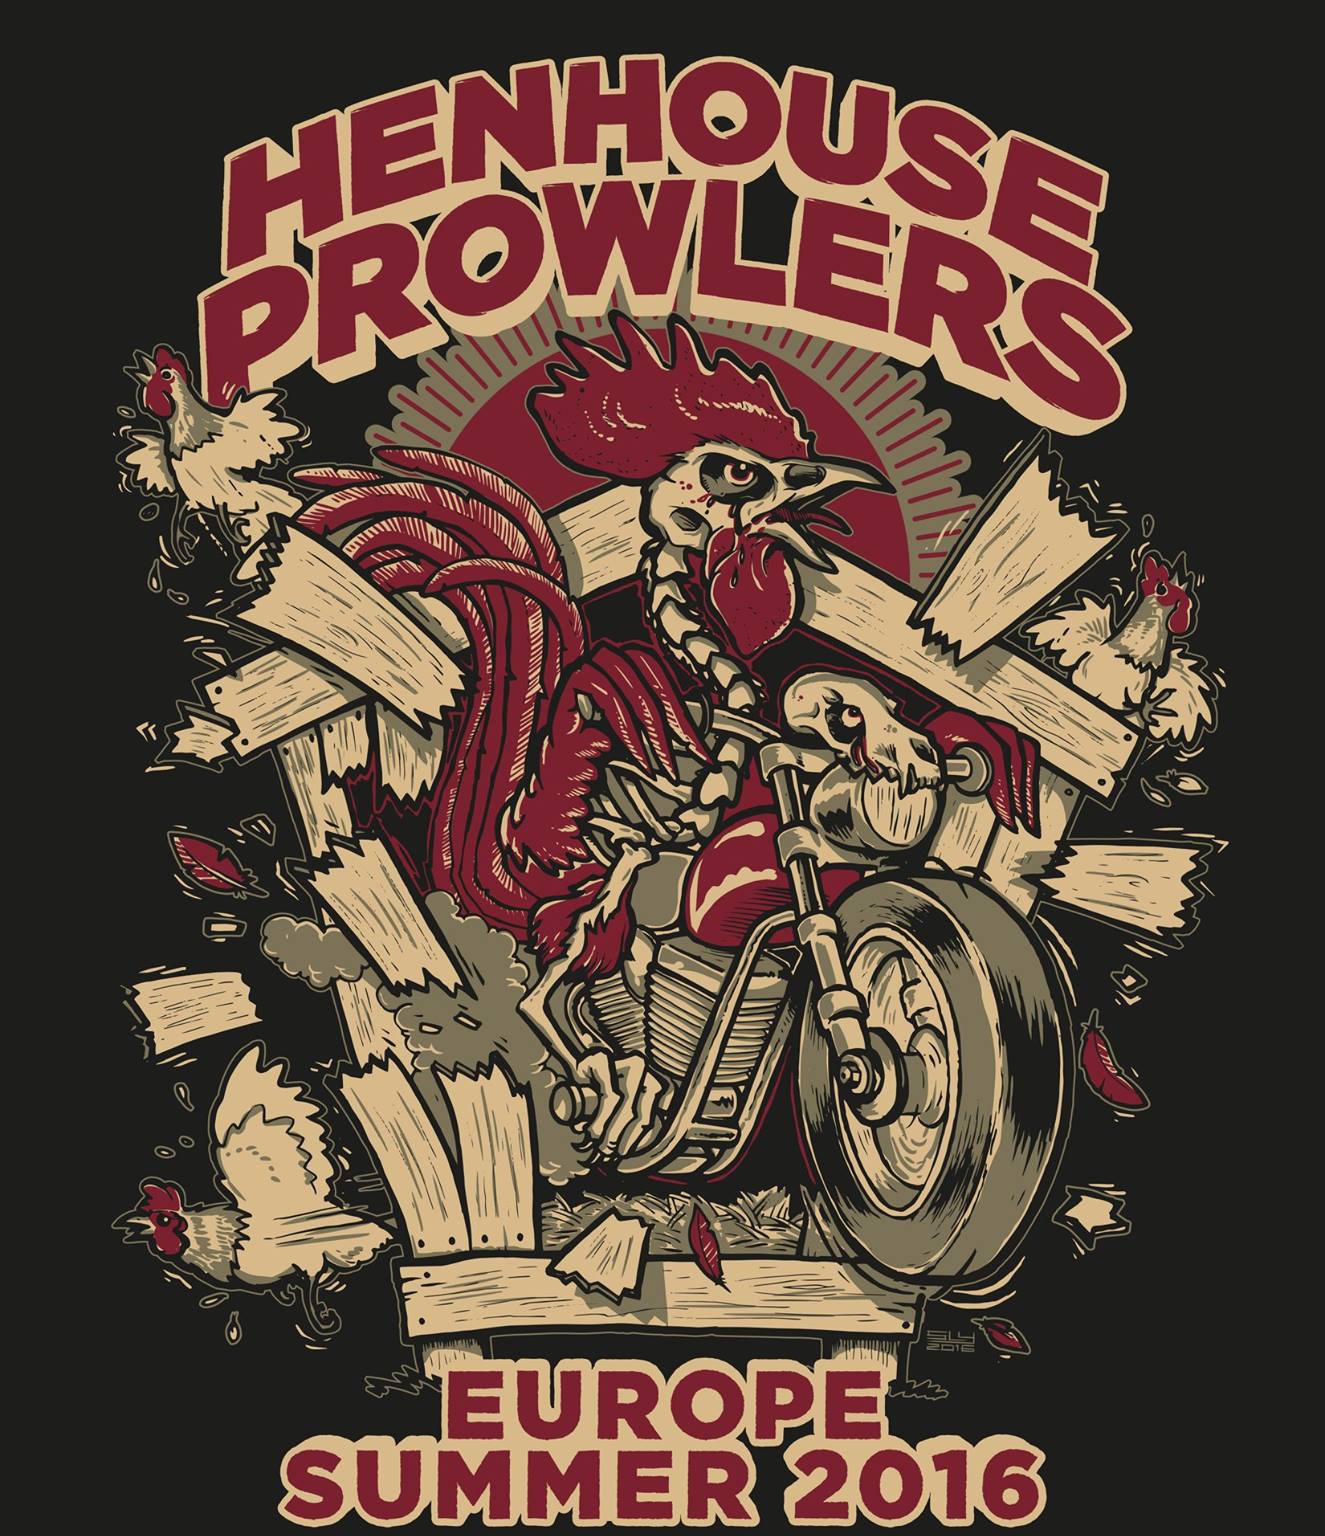 Henhouse Prowlers kick off European tour this weekend